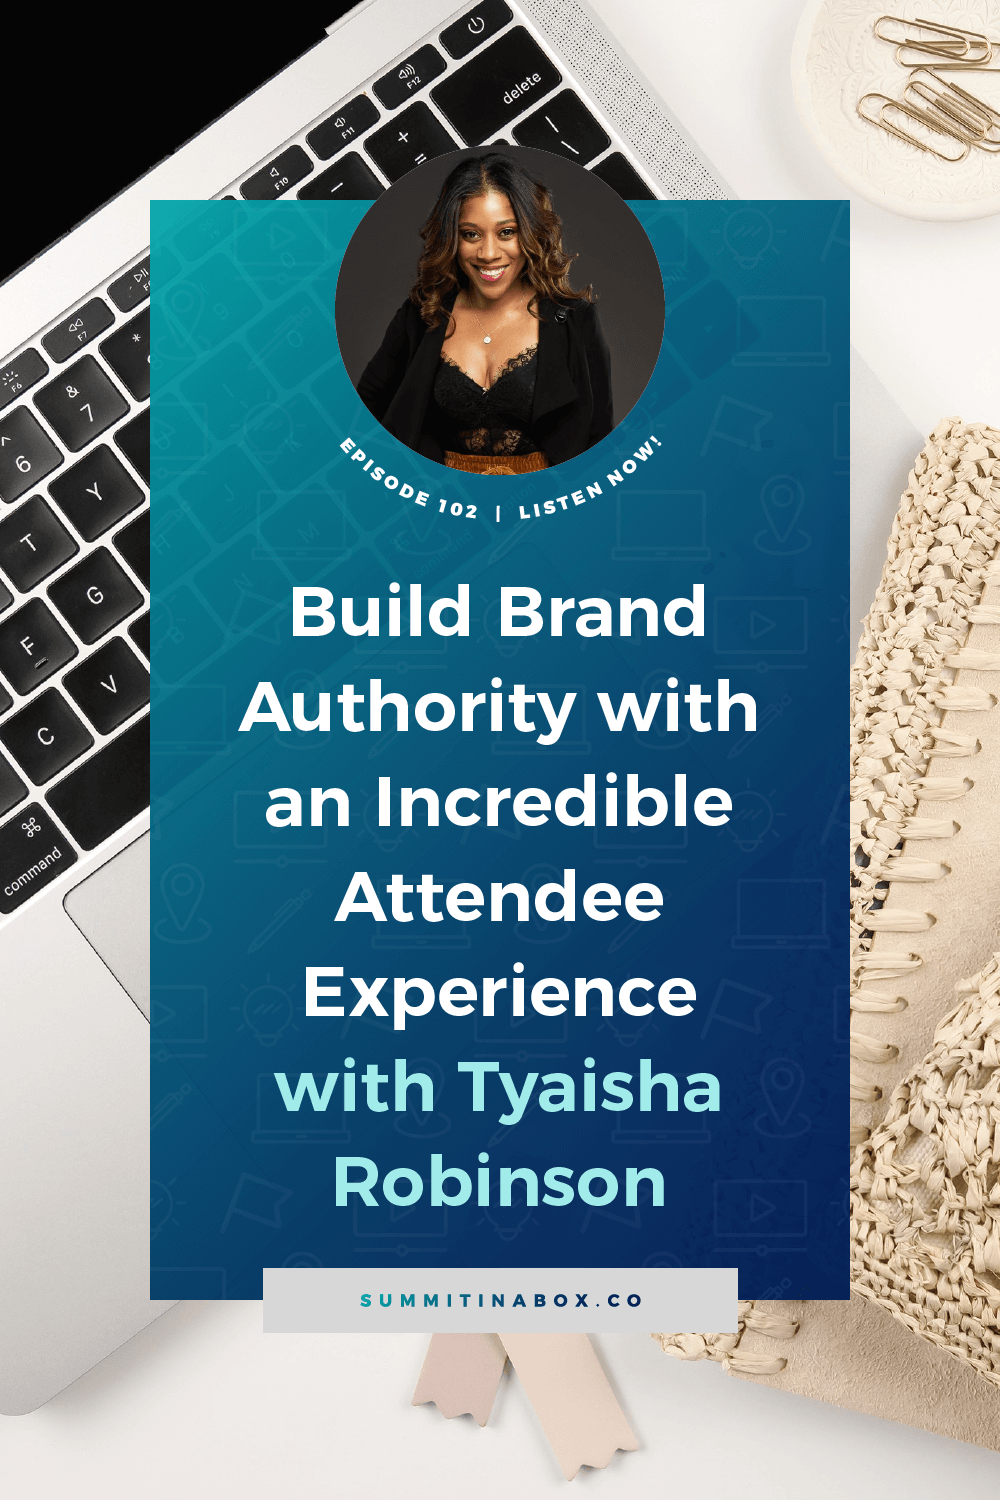 A virtual summit can skyrocket your email list, revenue, and connections, but it's also a way to build brand authority. Here are 5 keys to making it happen!